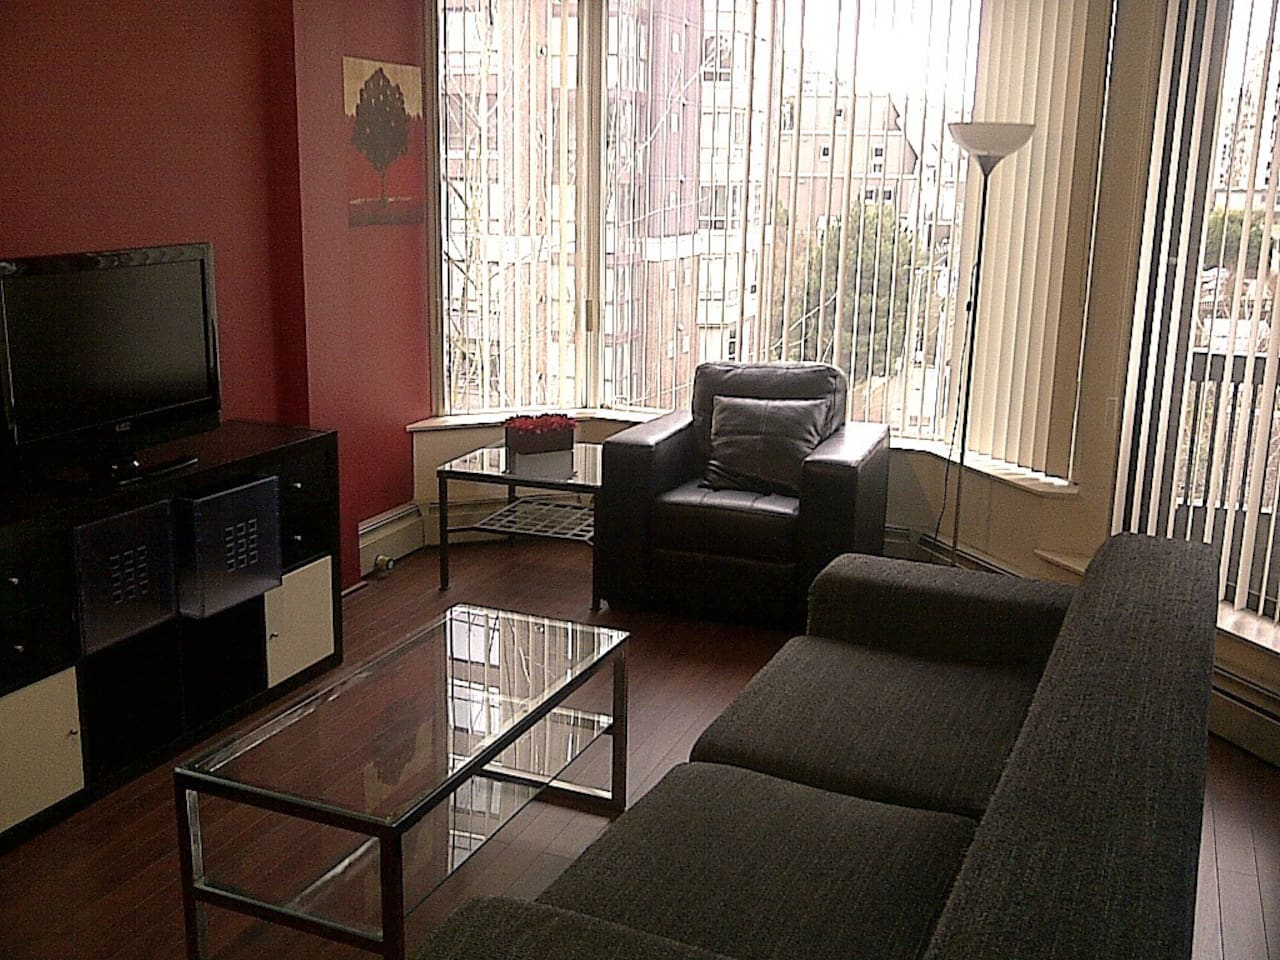 Living room and area.